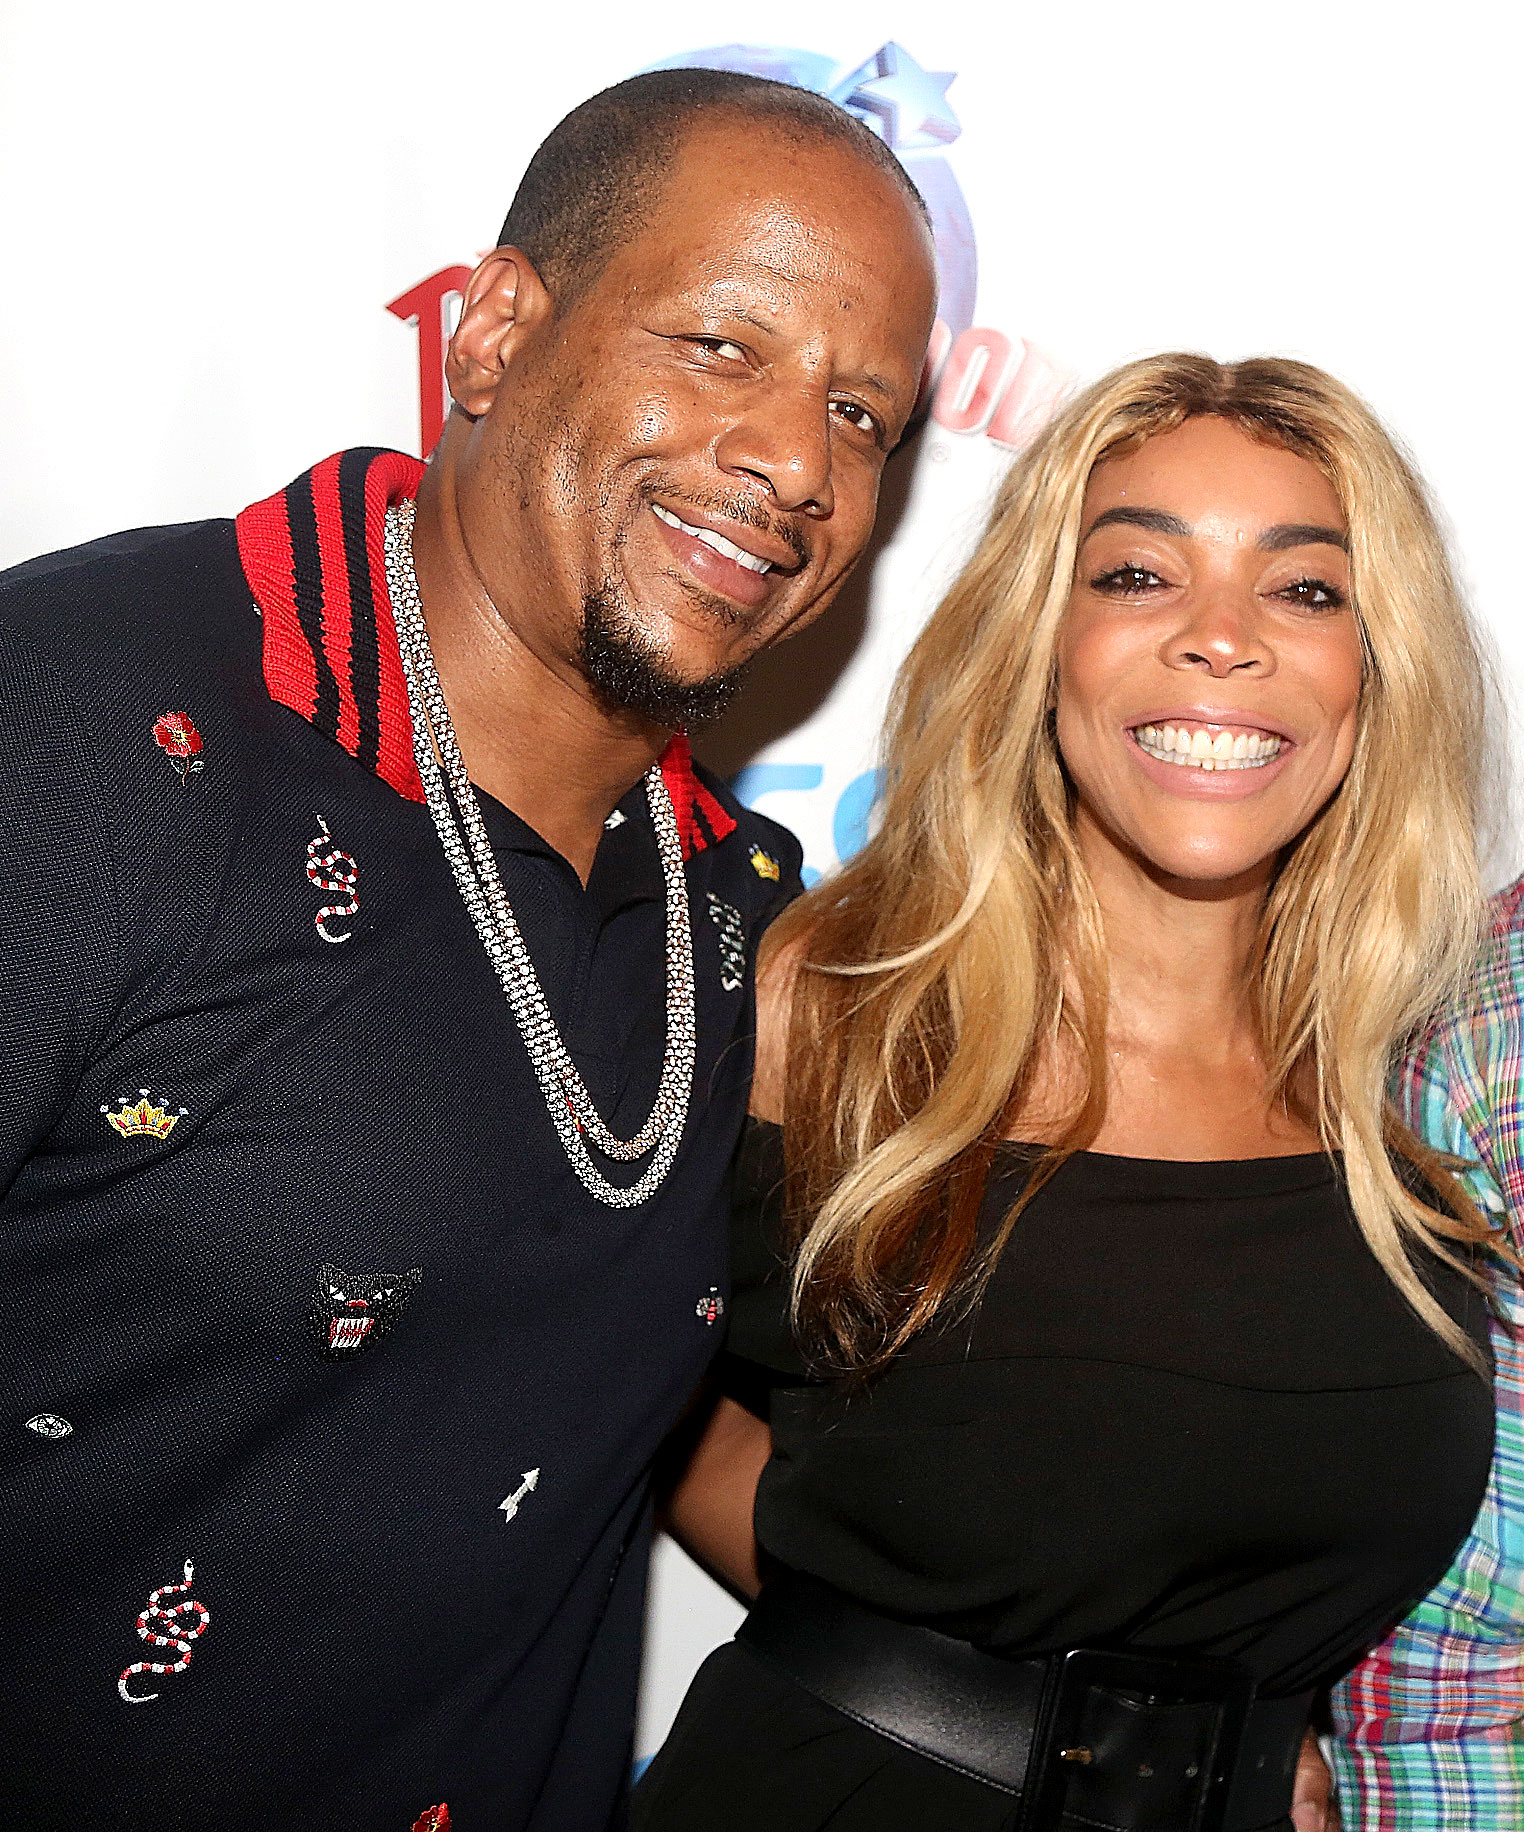 Wendy Williams Healing to Do After Filing for Divorce - Kevin Hunter and Wendy Williams at the celebration for The Hunter Foundation Charity at Planet Hollywood Times Square on July 11, 2017 in New York City.